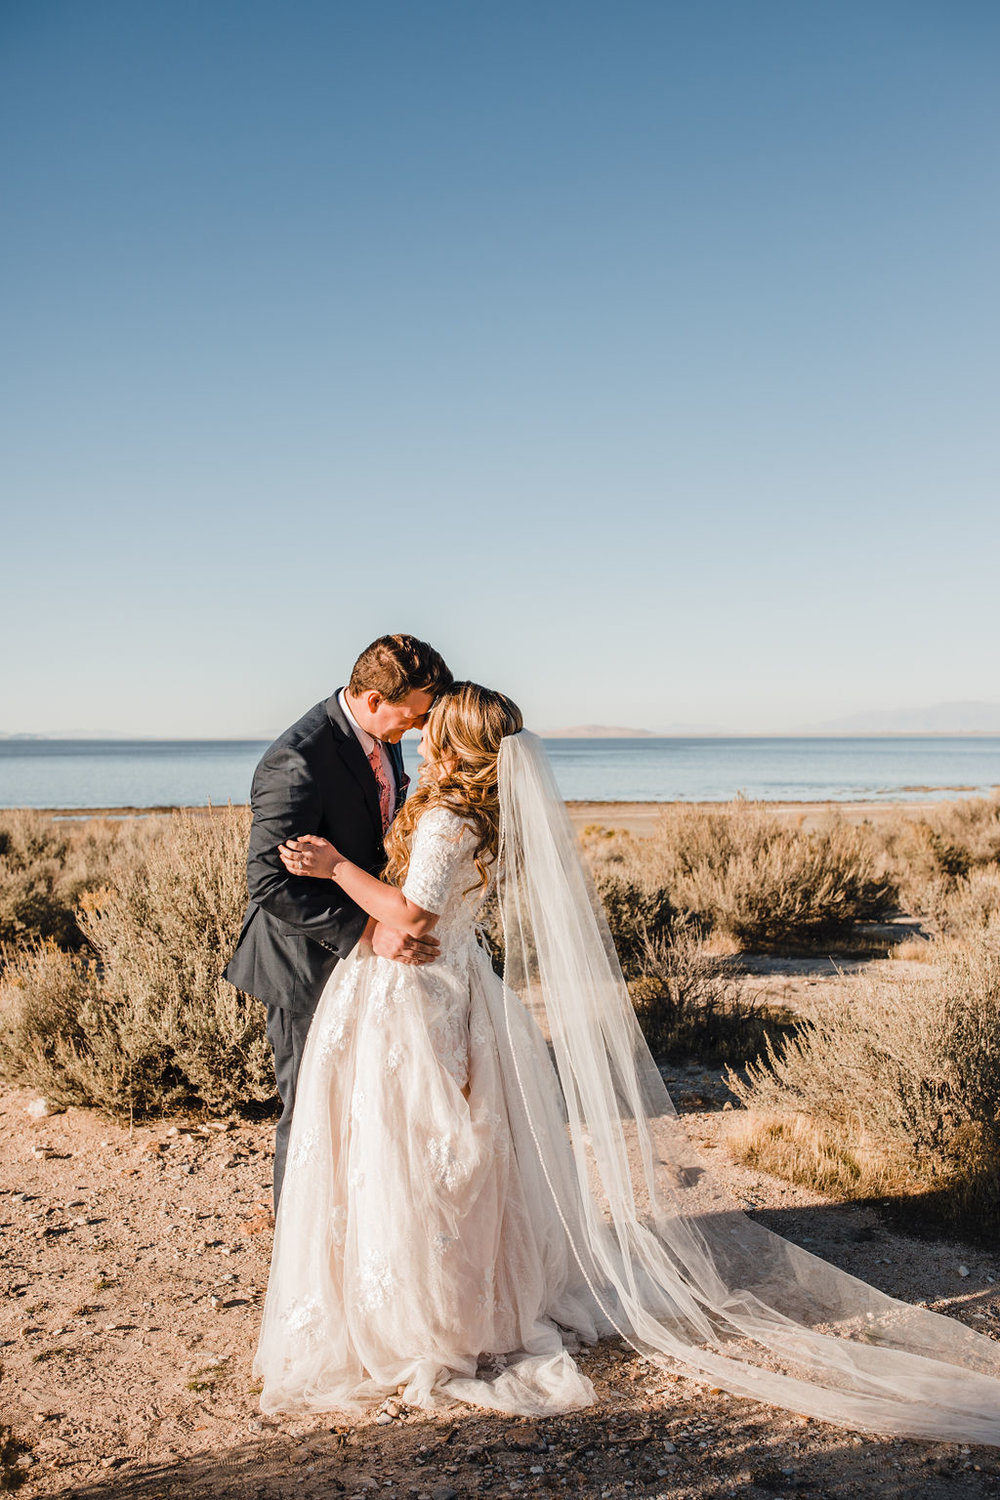 professional salt lake city wedding photographer long veil sand antelope island clear skies kissing romantic